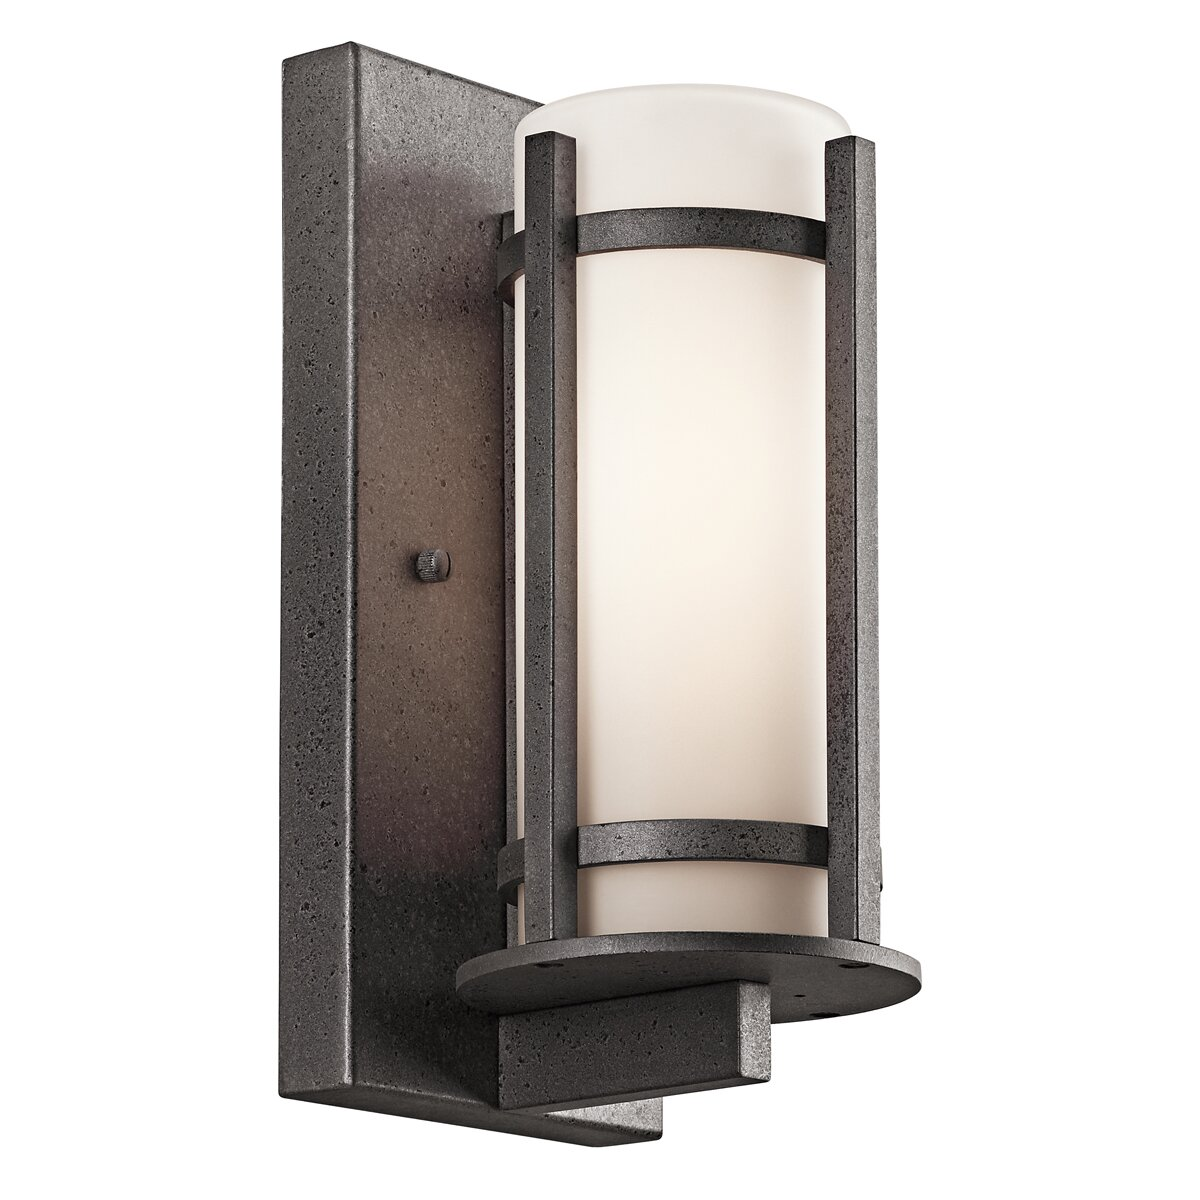 Kichler Camden 1 Light Outdoor Sconce Reviews Wayfair